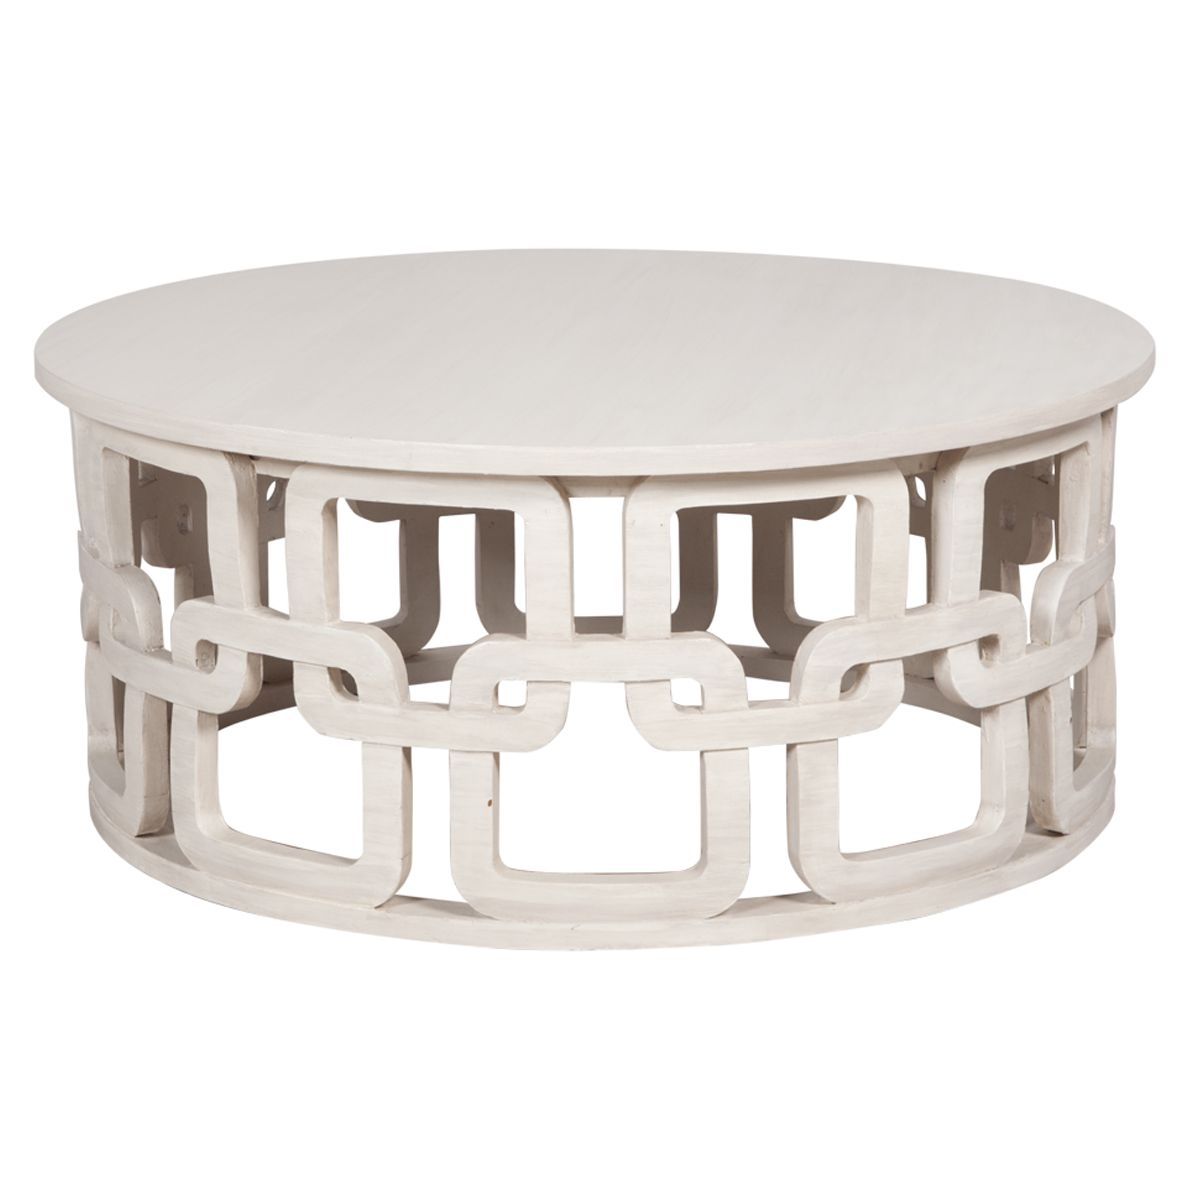 White Washed Round Coastal Coffee Table Client KR Pinterest